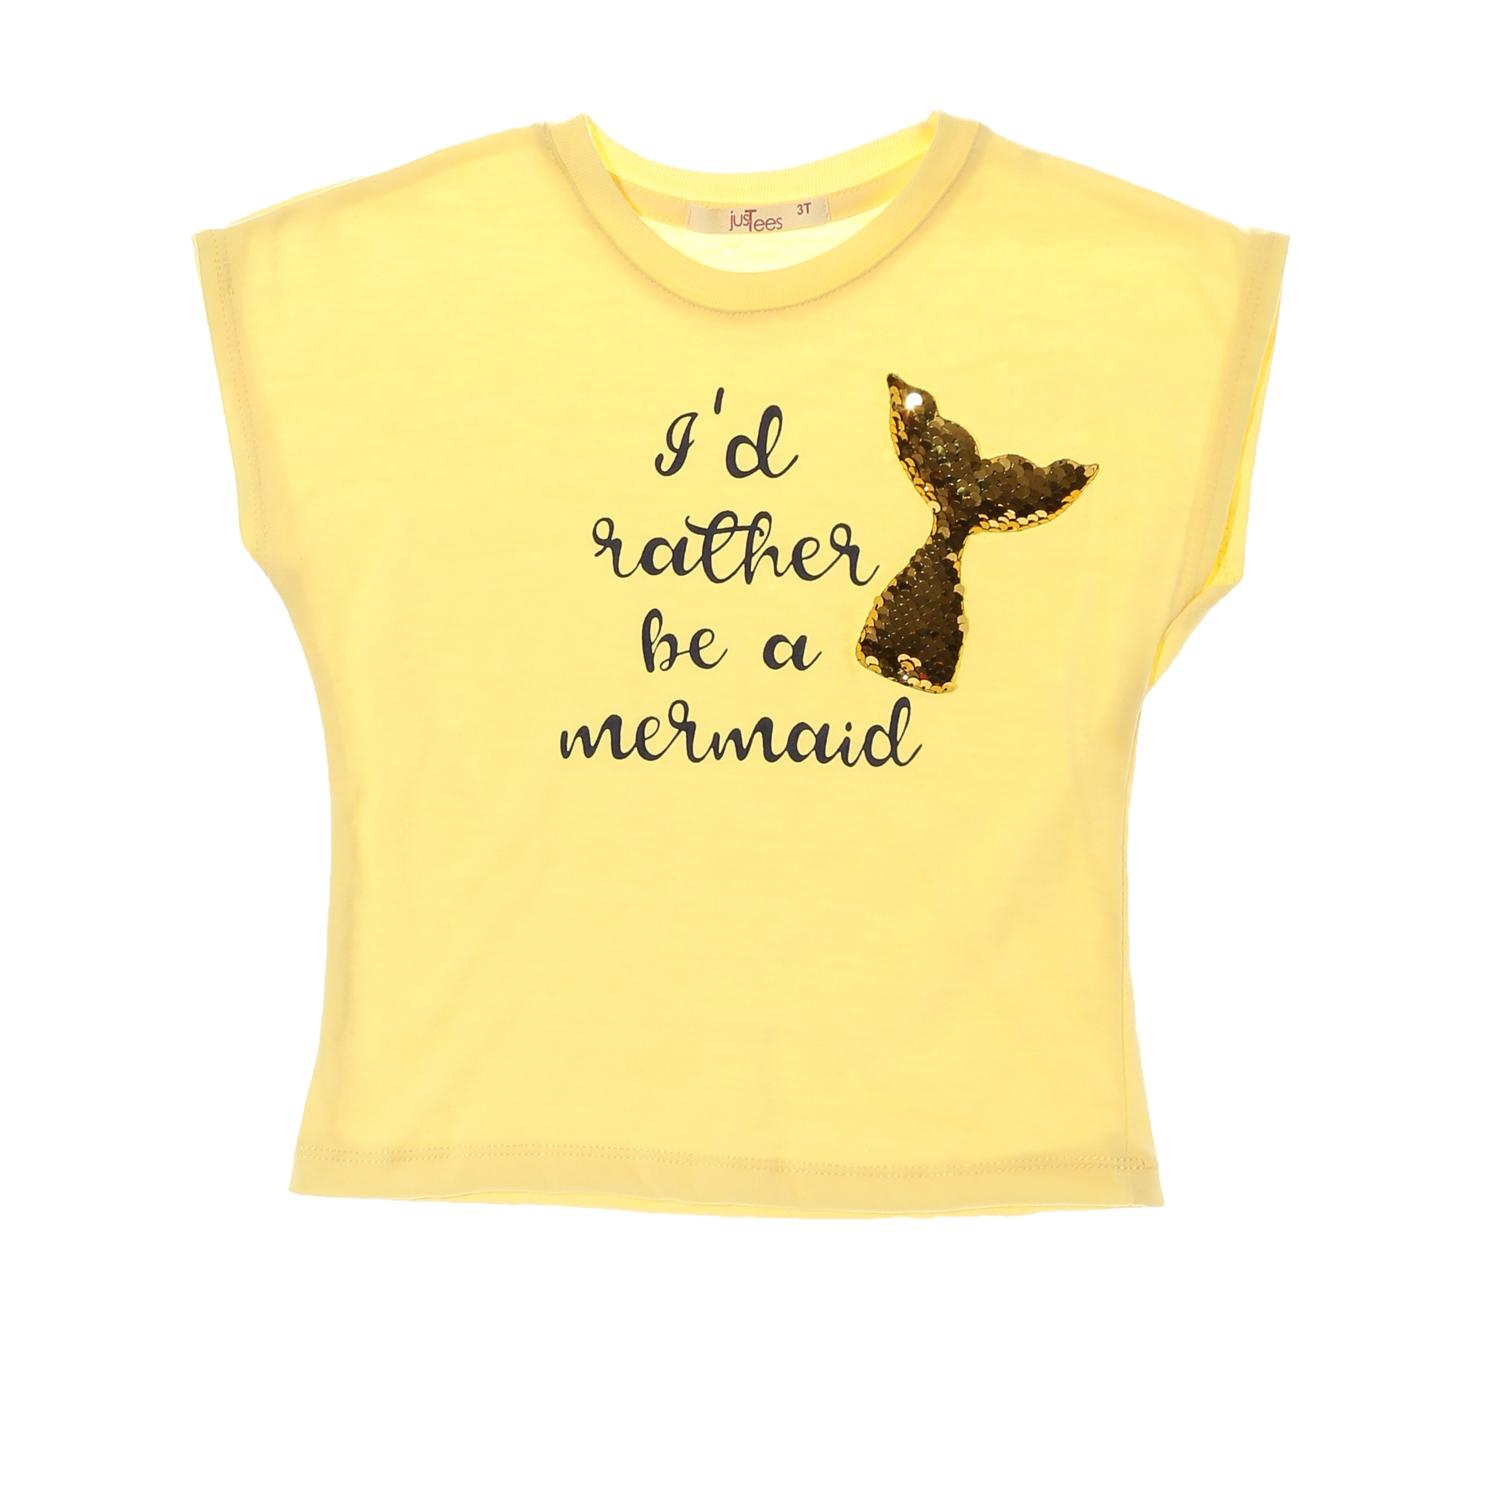 a331787a8c0f2 jusTees Toddler Girls Mermaid Design-changing Graphic Tee in Yellow